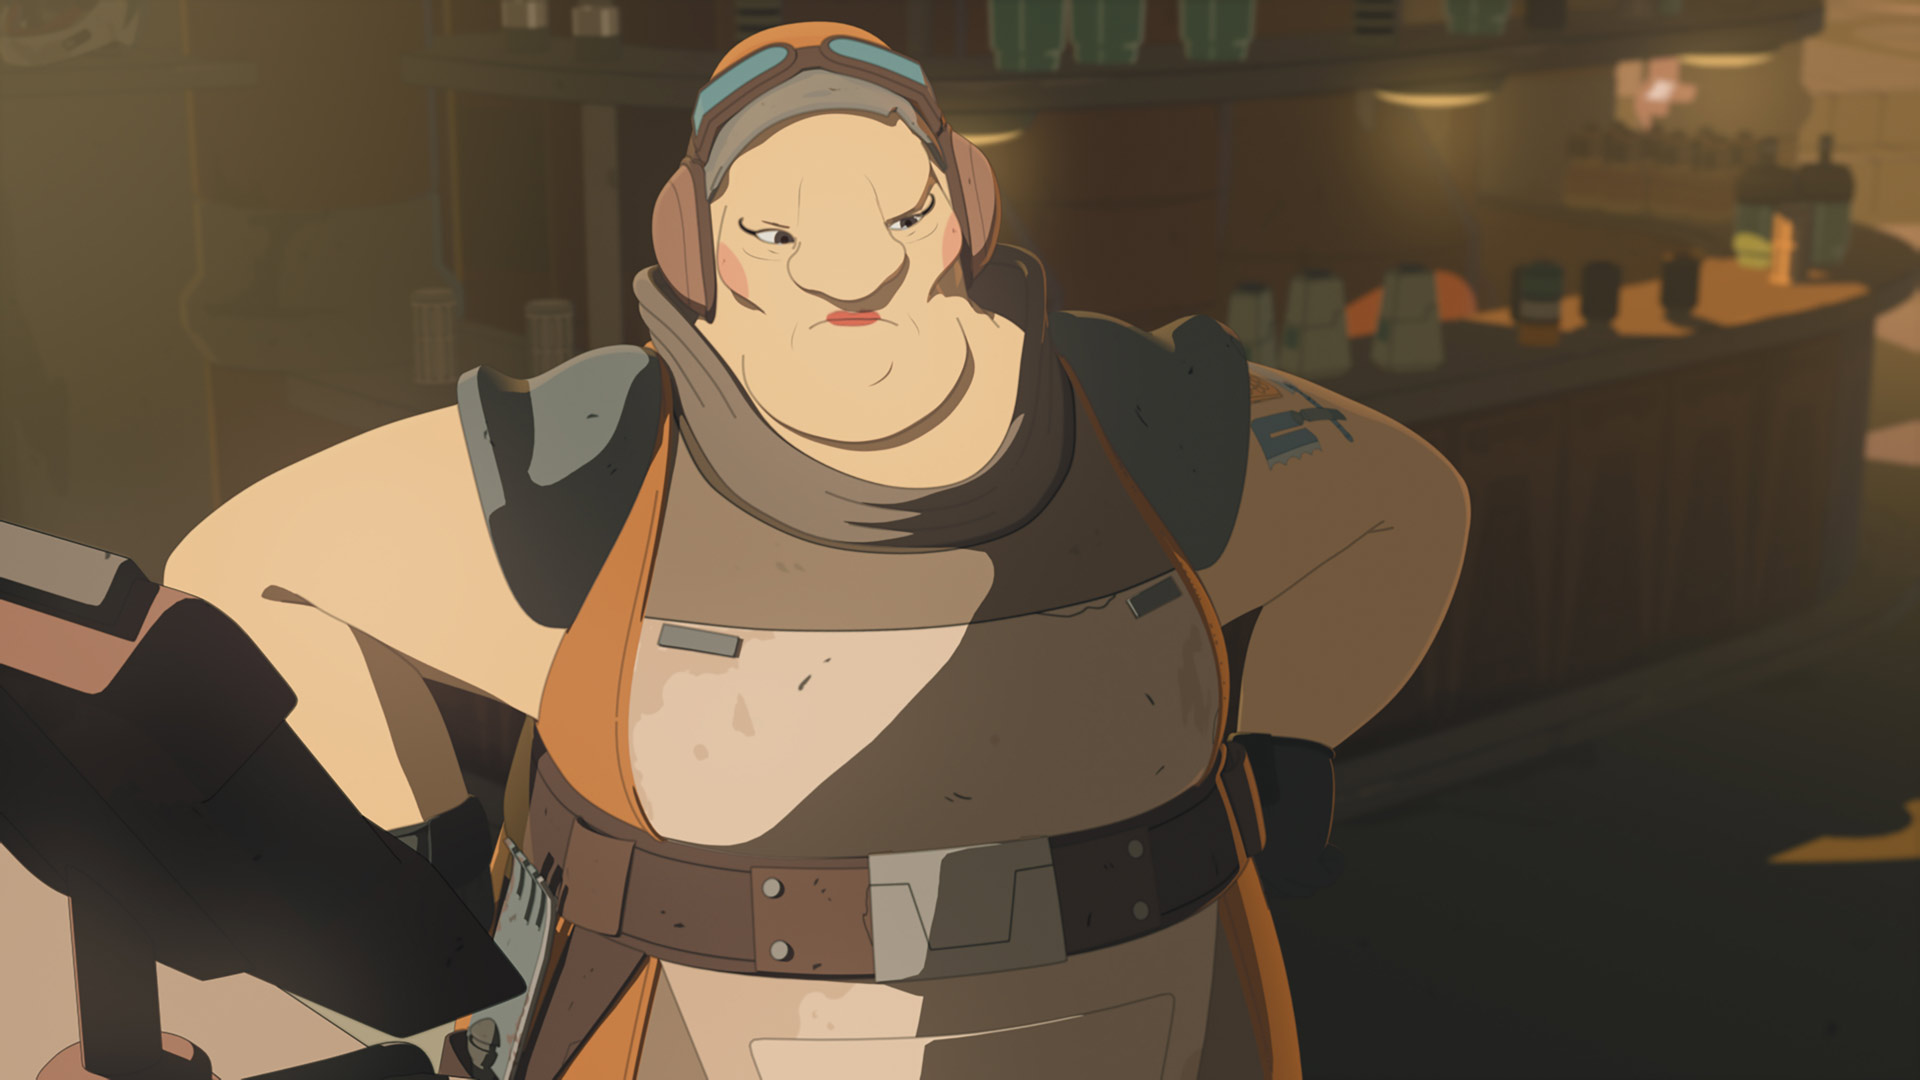 Aunt Z from Star Wars Resistance.